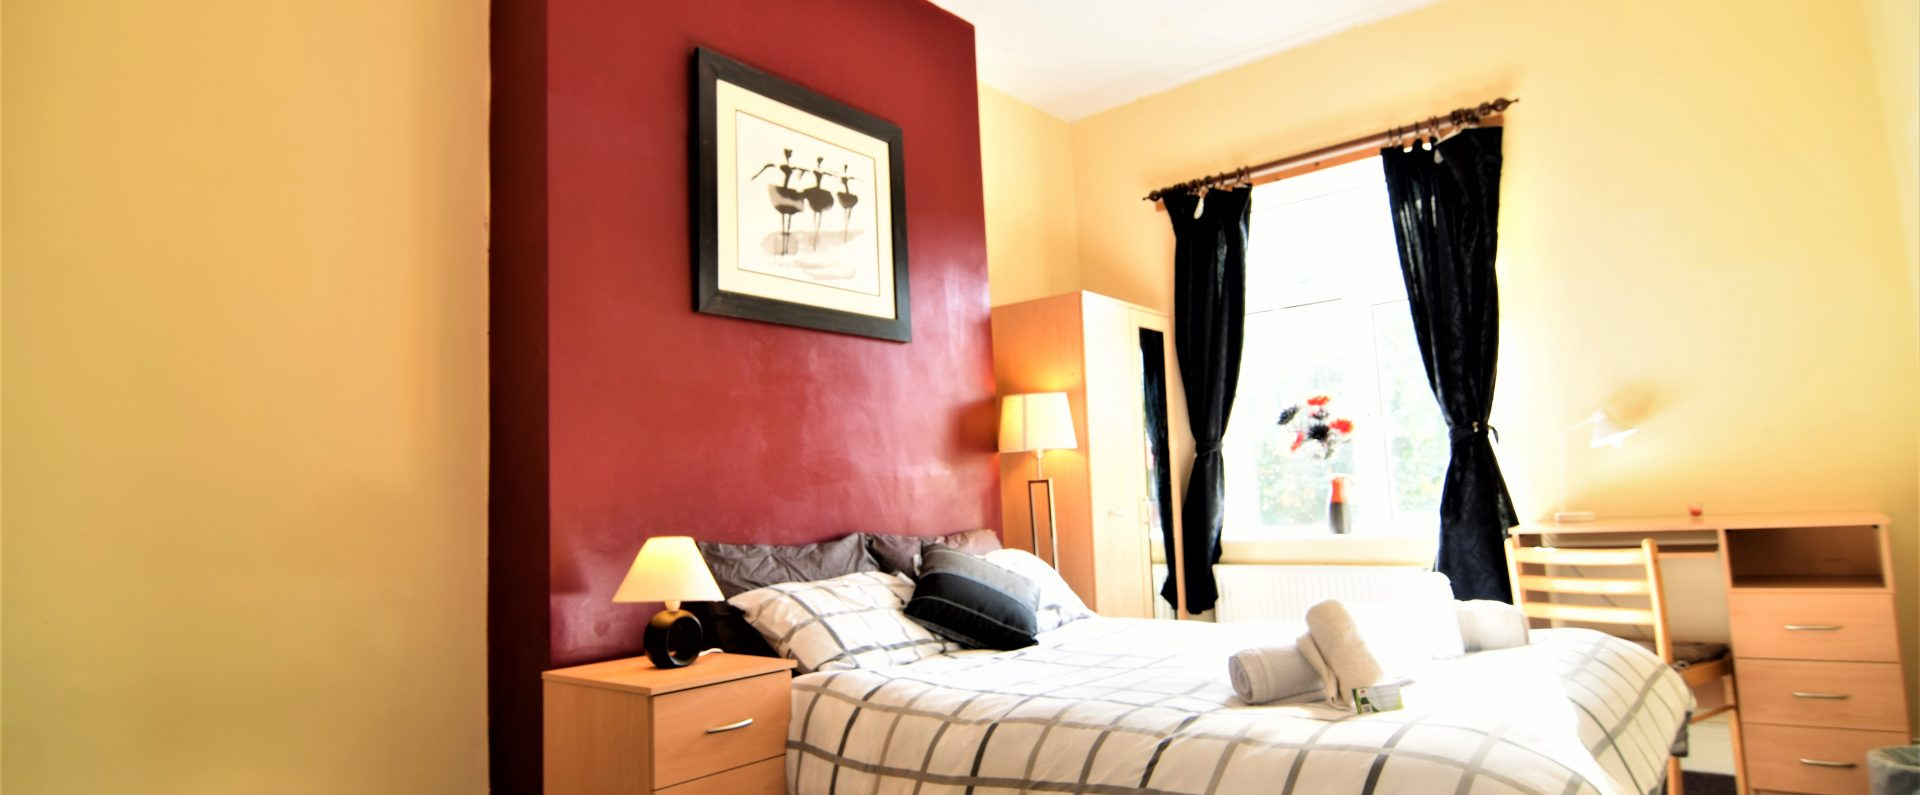 manus-place-private-double-room